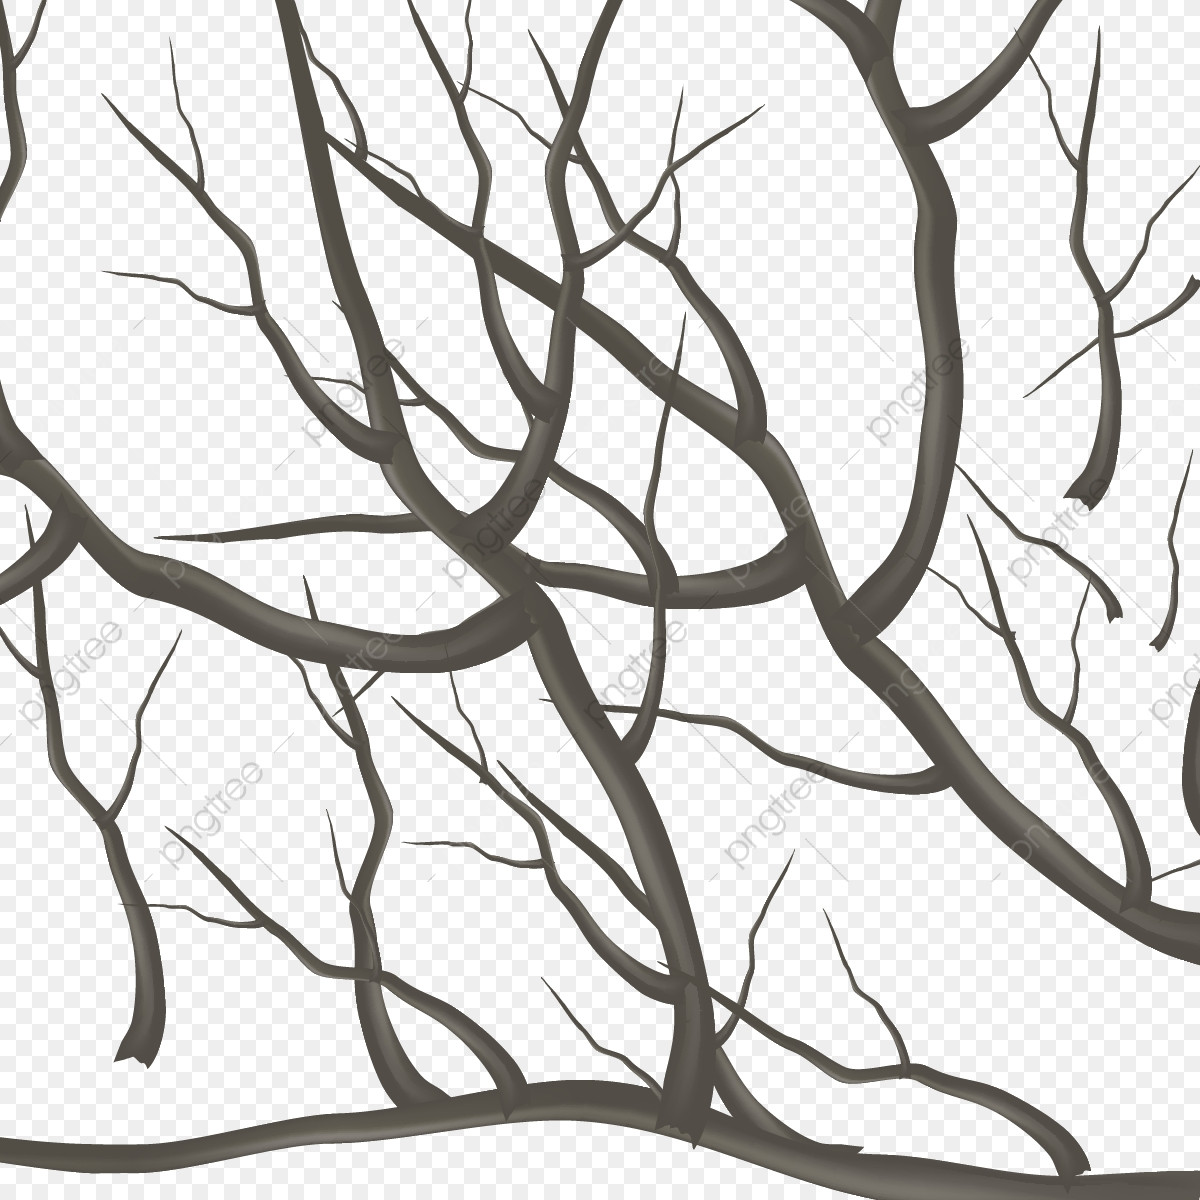 Winter Tree Branches Decoration Branch Clipart Winter Tree Tree Branches Png And Vector With Transparent Background For Free Download